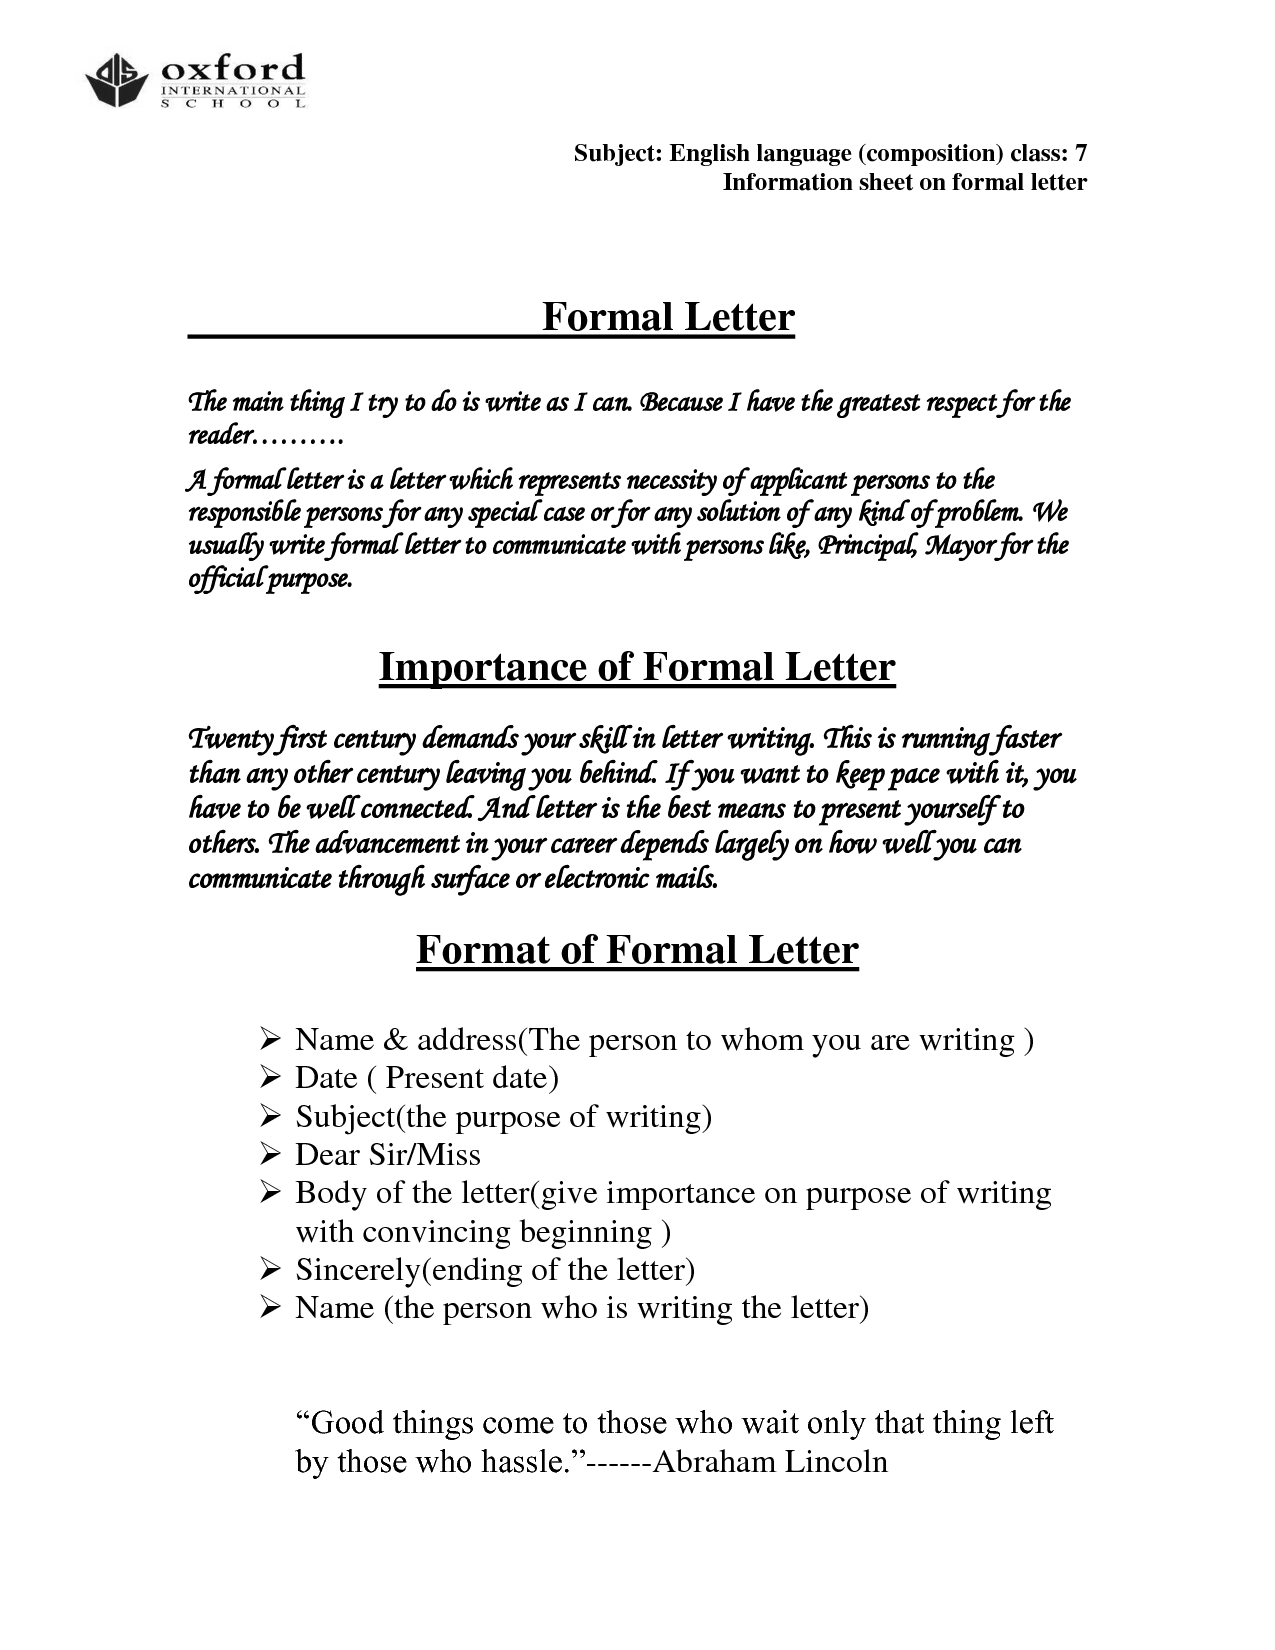 Official letter format templateofficial letter business letter official letter format templateofficial letter business letter sample spiritdancerdesigns Images